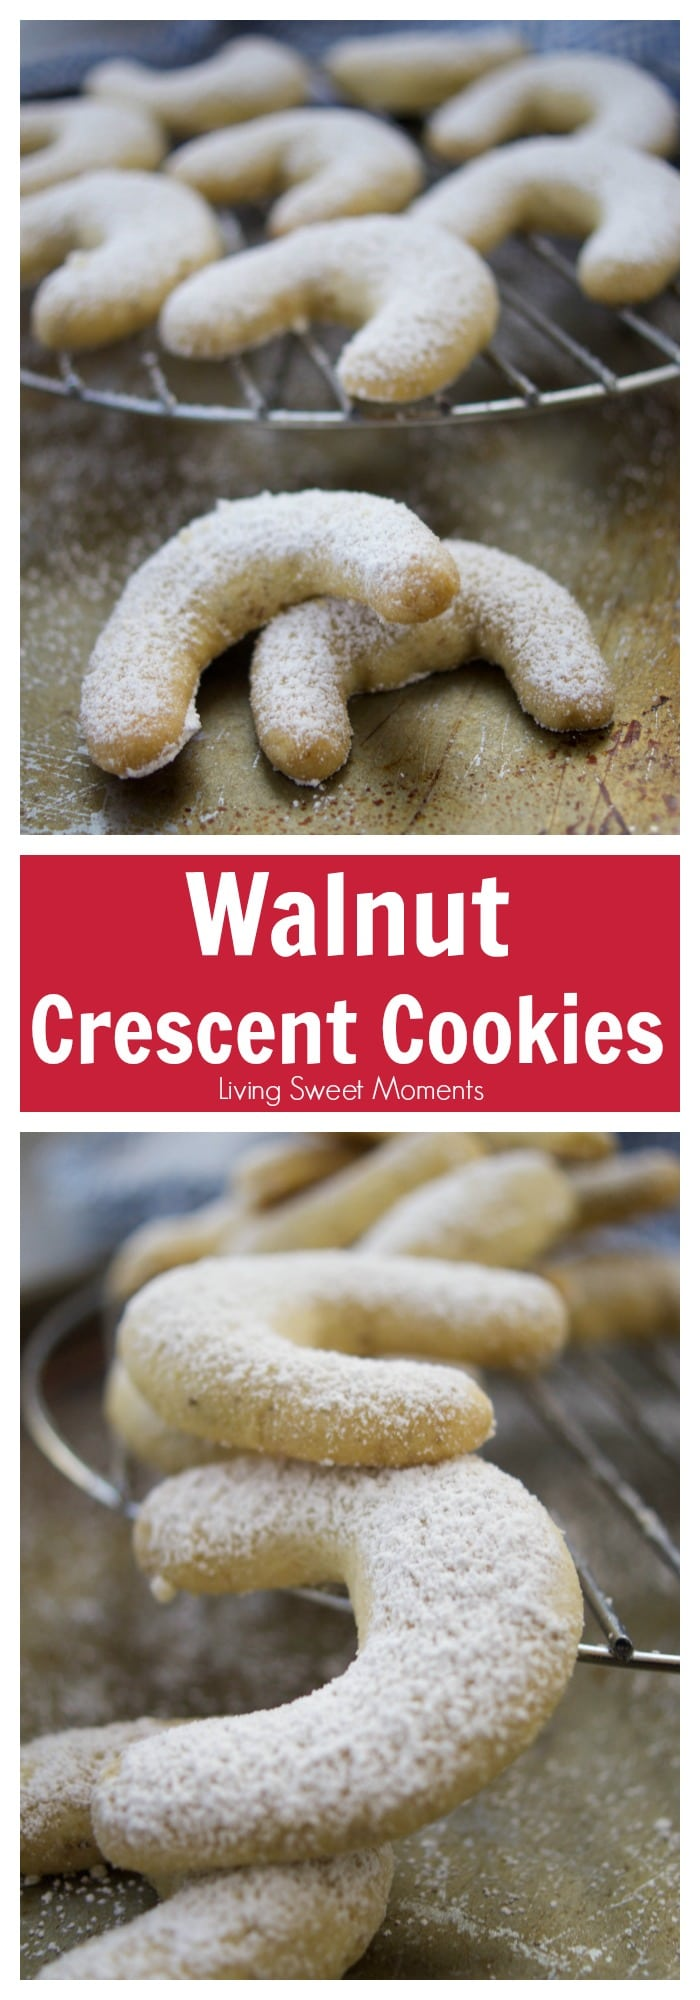 This melt-in-your-mouth crumbly Walnut Crescent Cookies recipe is super easy to make and it's the perfect dessert for the Holidays and entertaining.